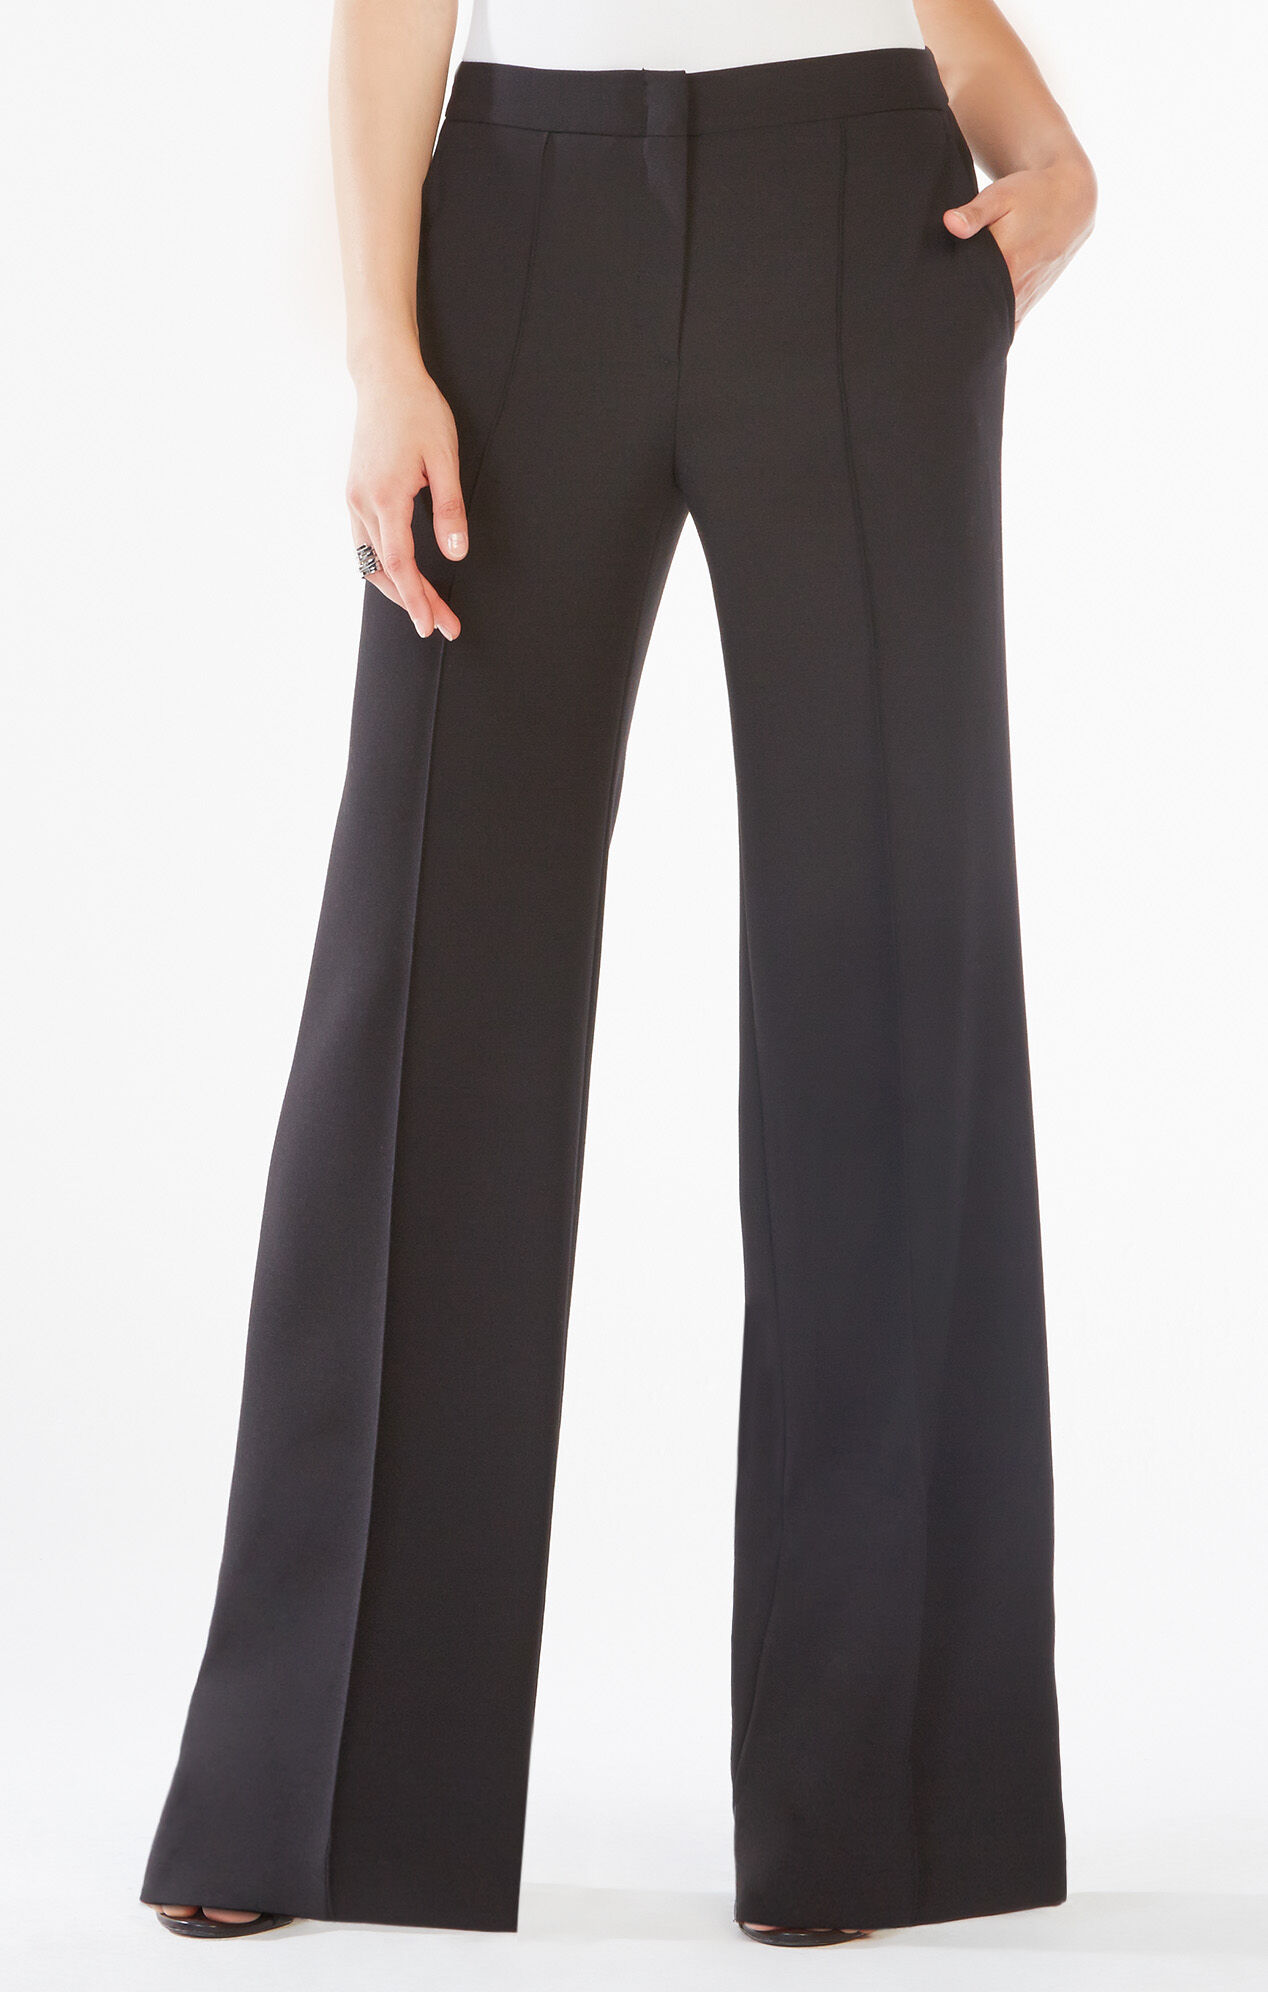 check velvet trousers. zw premium high waist fly button jeans in black corduroy. new. corduroy z pants. new. faux leather leggings. new. check velvet trousers. leggings with sparkly detail. buttoned wide leg pants. striped ankle length pants. jogging pants. wrap tie leggings. snap leggings.